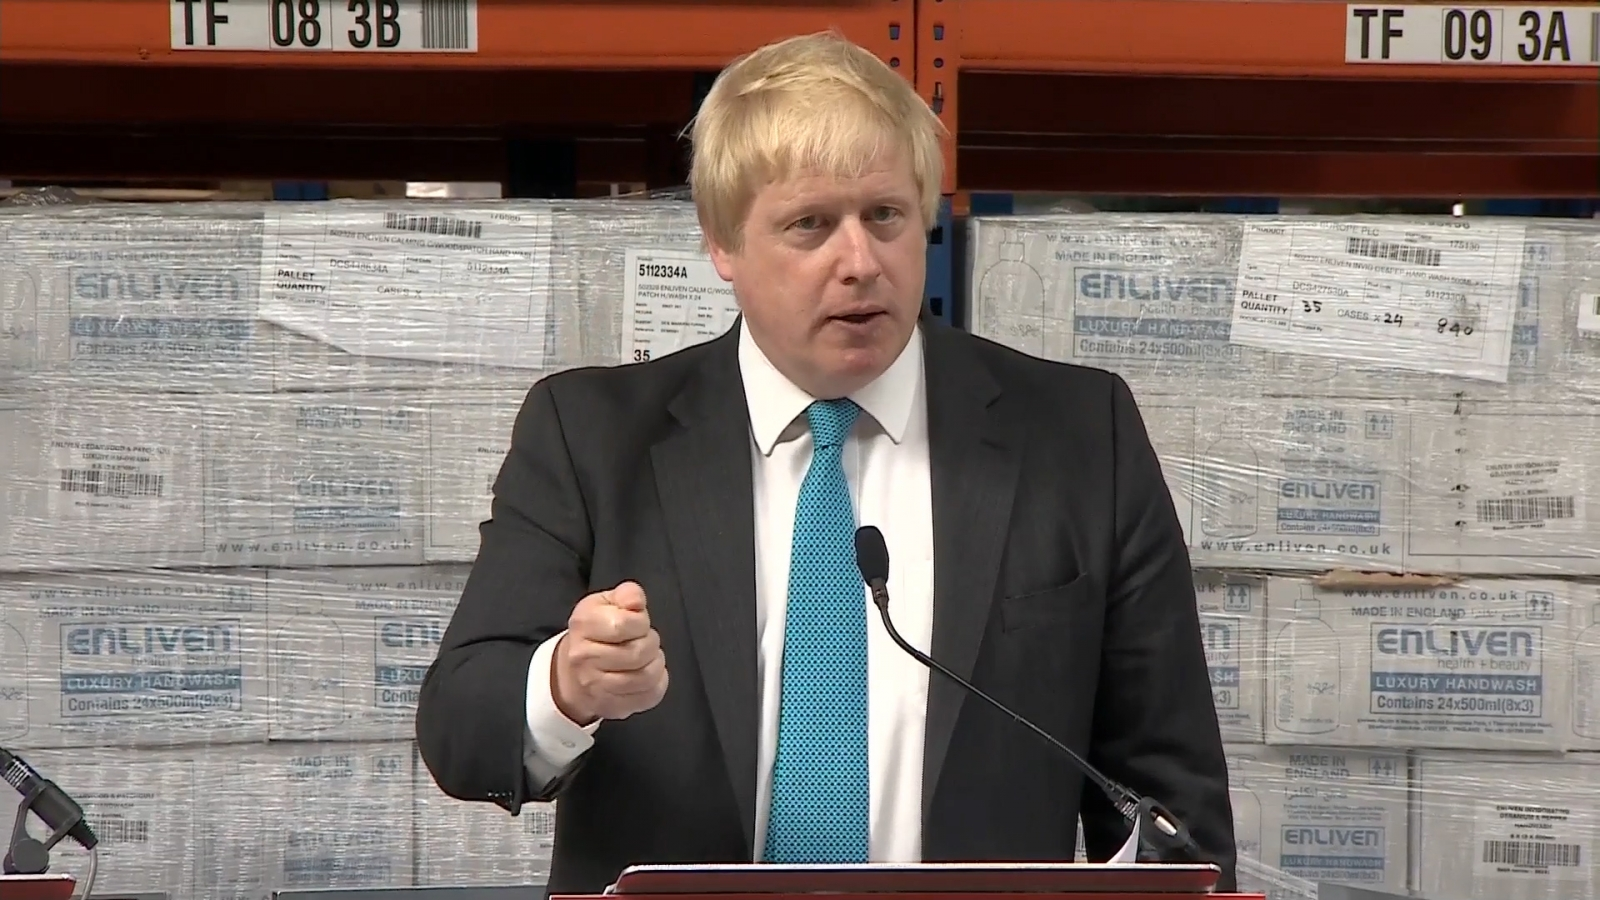 Boris Johnson gives Leave speech